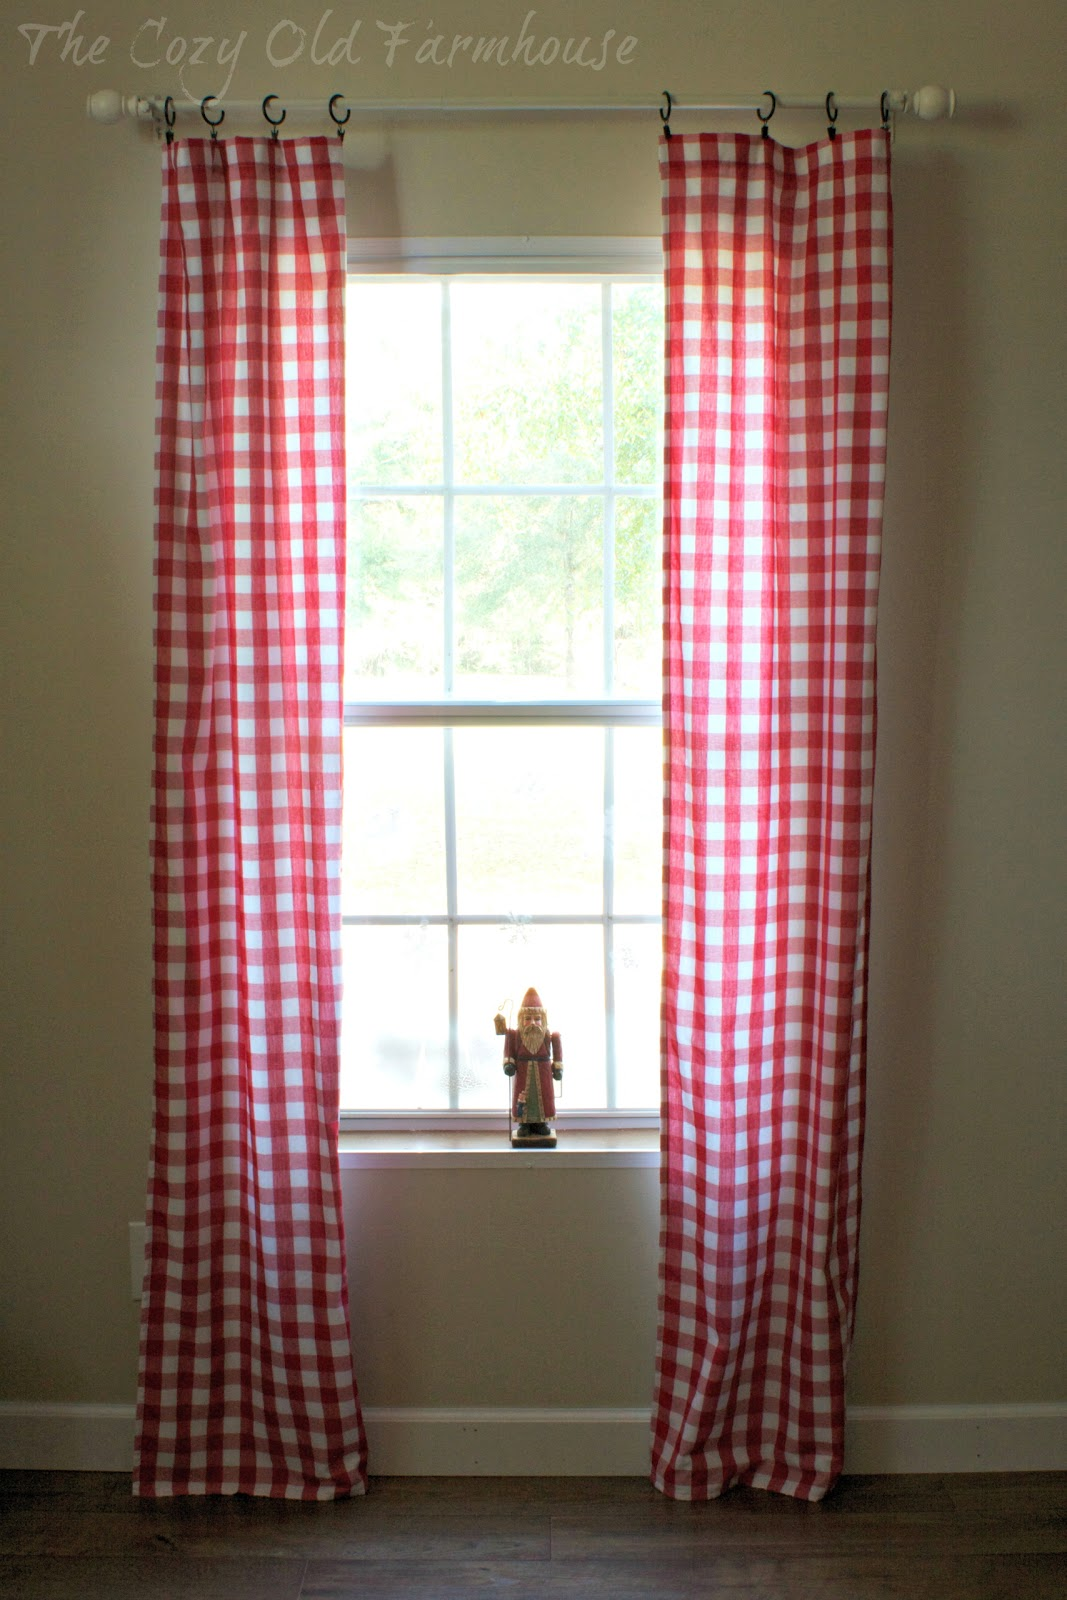 The Cozy Old Farmhouse Quick Update Post